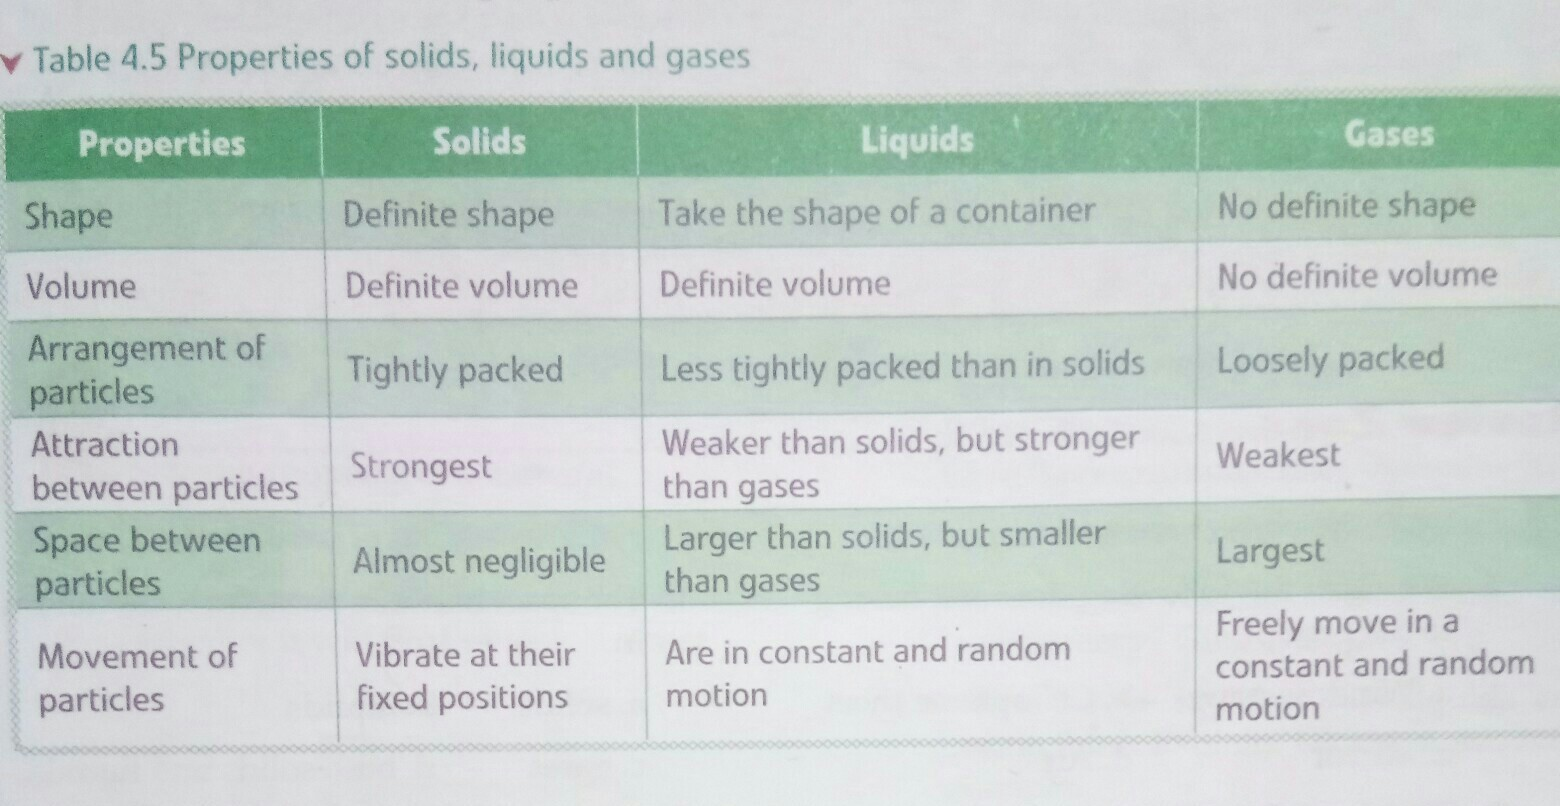 Distinguish between solids. liquids and gases in tabular form under the following characteristics: - Brainly.in